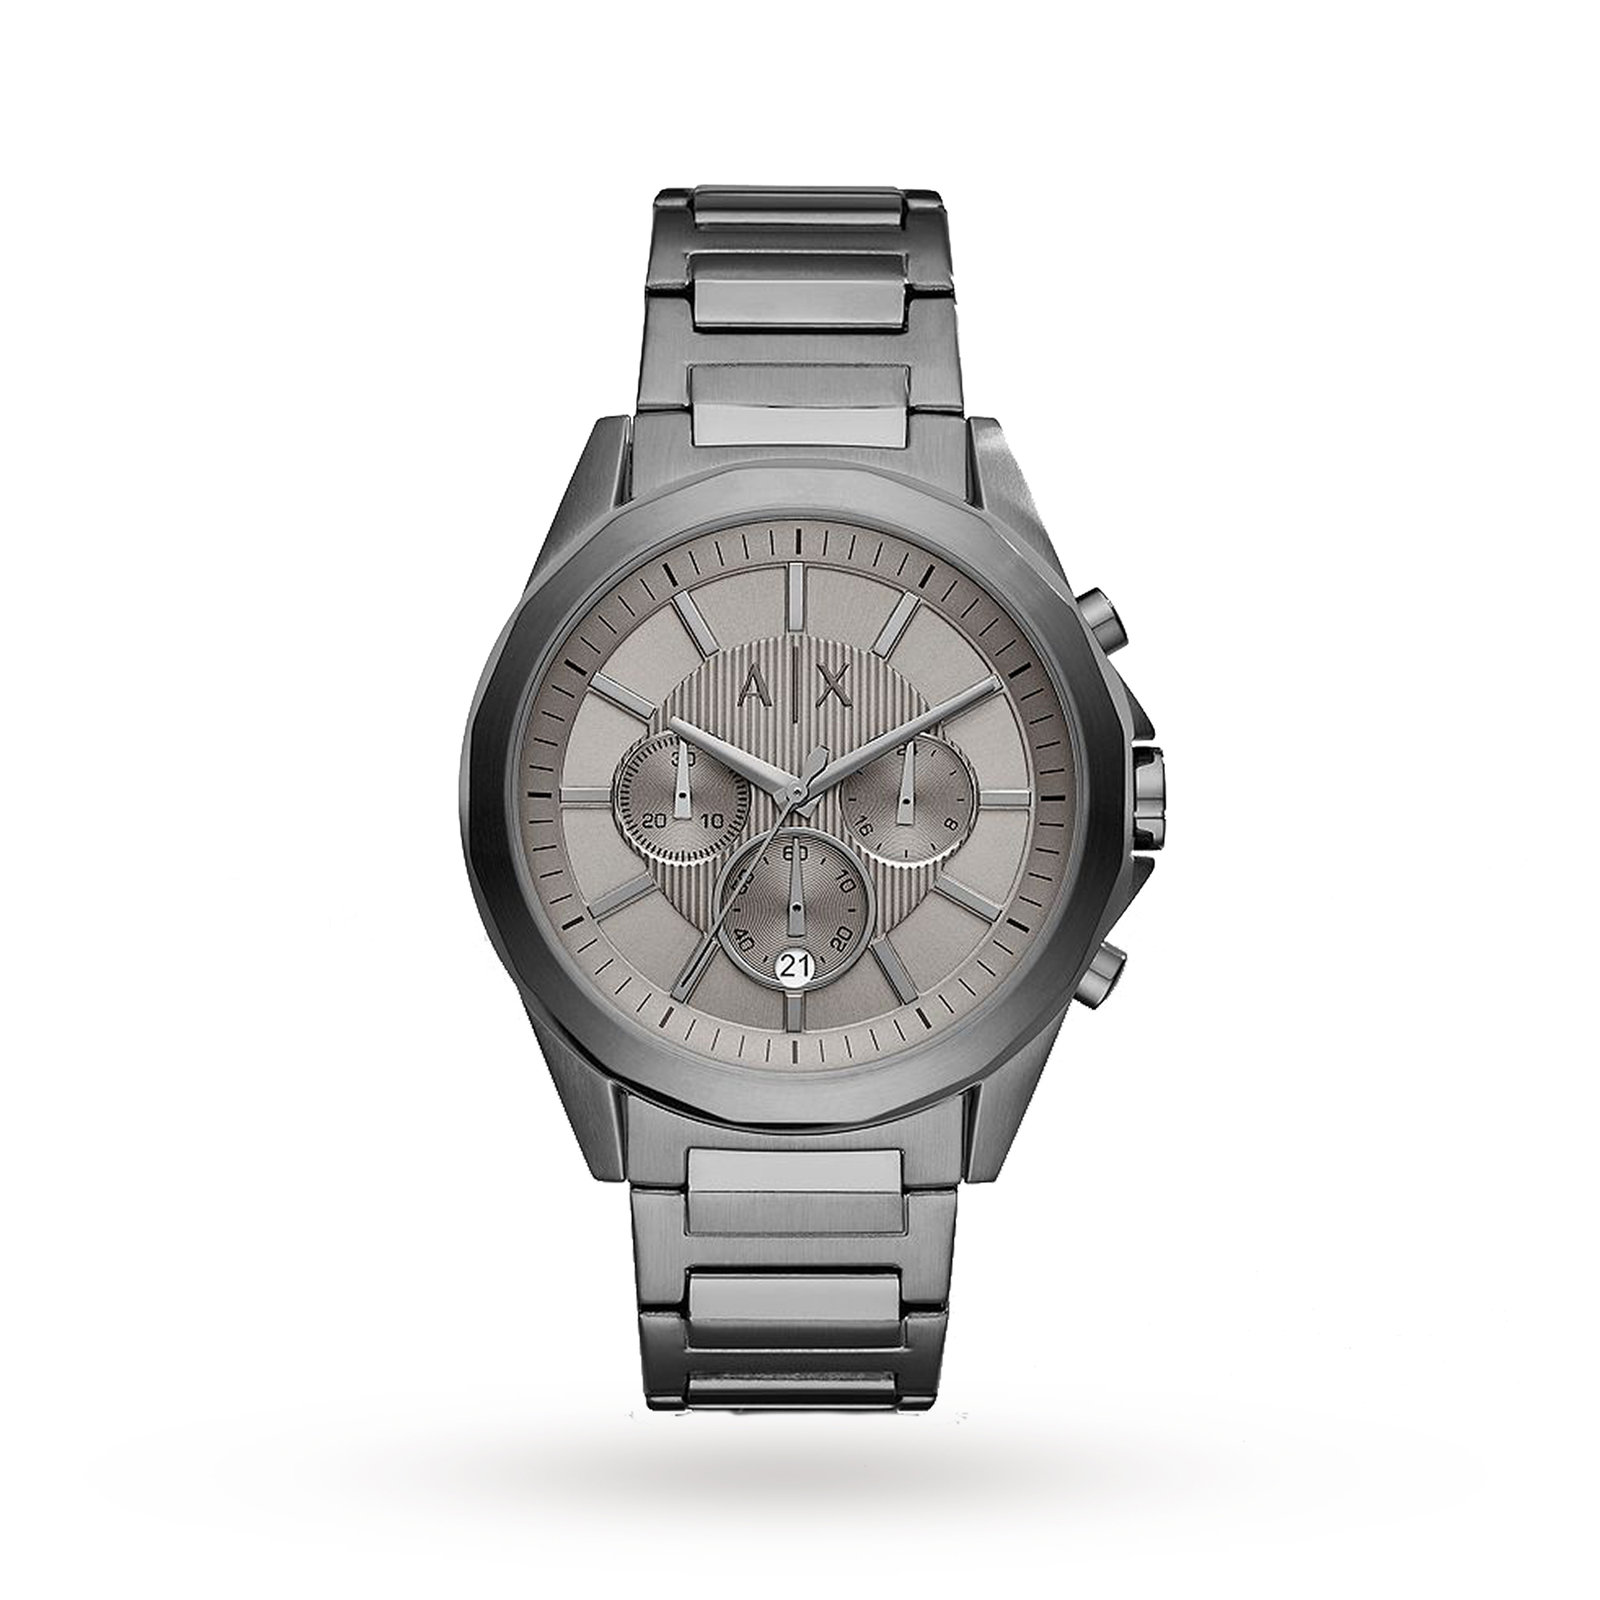 Armani Exchange Dress Watch AX2603 - Exclusive